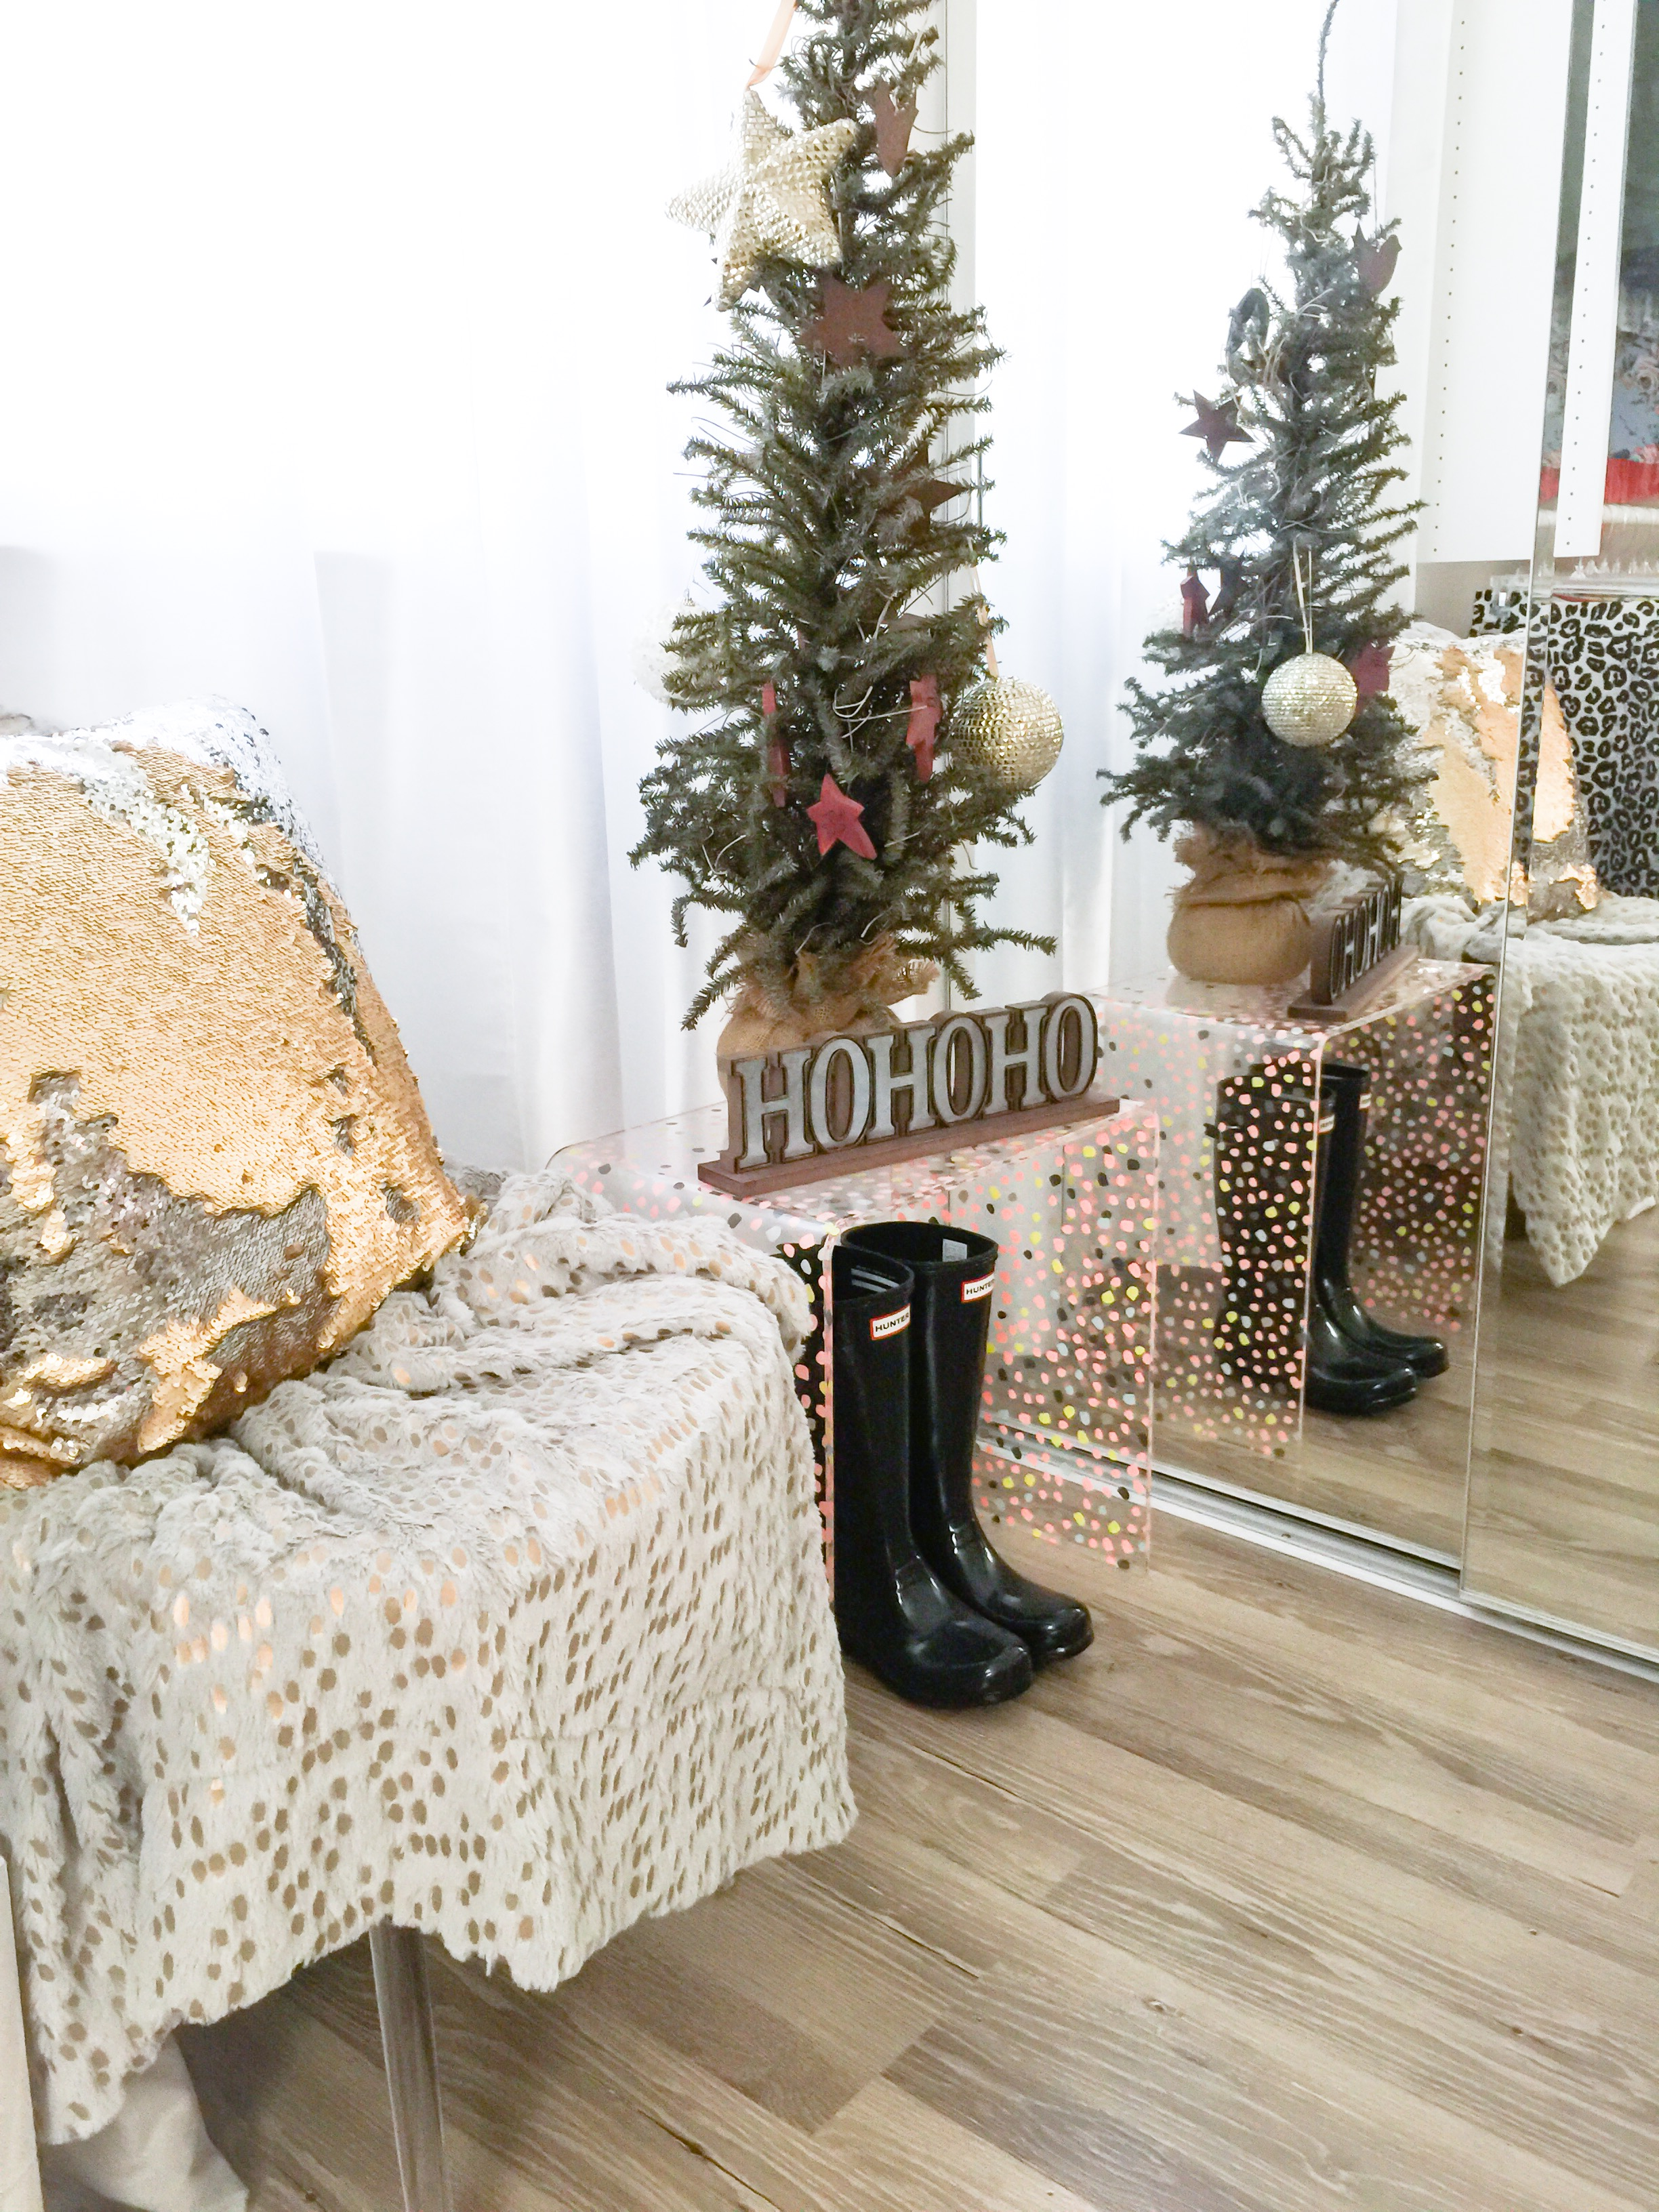 Uncategorized christmas decorations amp holiday decorations - Thank You To Gordmans For Sponsoring This Post All Thoughts Are Sincerely My Own Thank You For Supporting Local Businesses Those That Support Me Xoxo